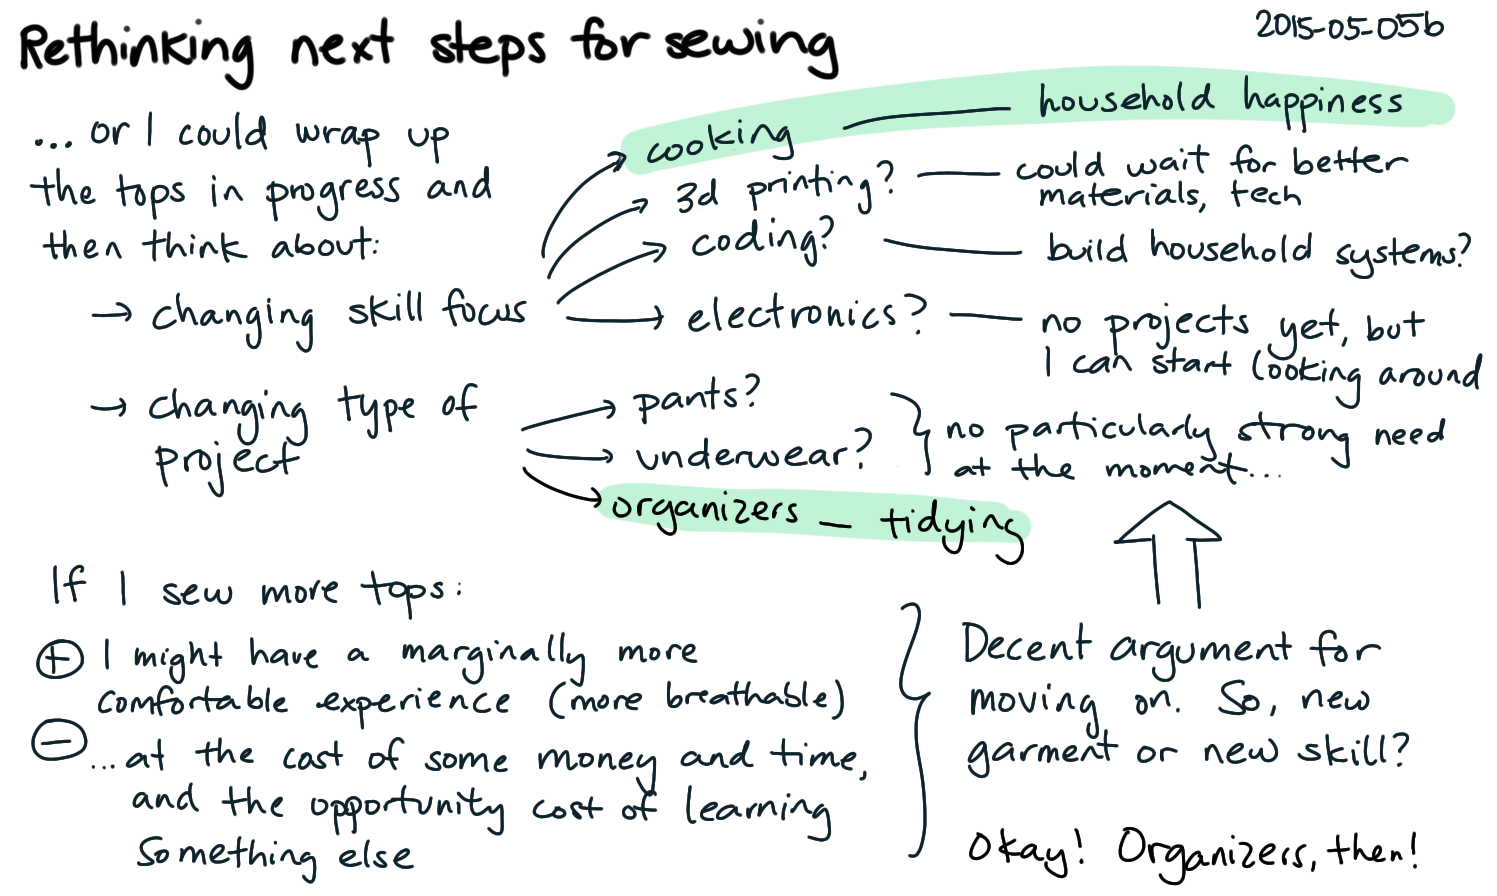 2015-05-05b Rethinking next steps for sewing -- index card #sewing.png